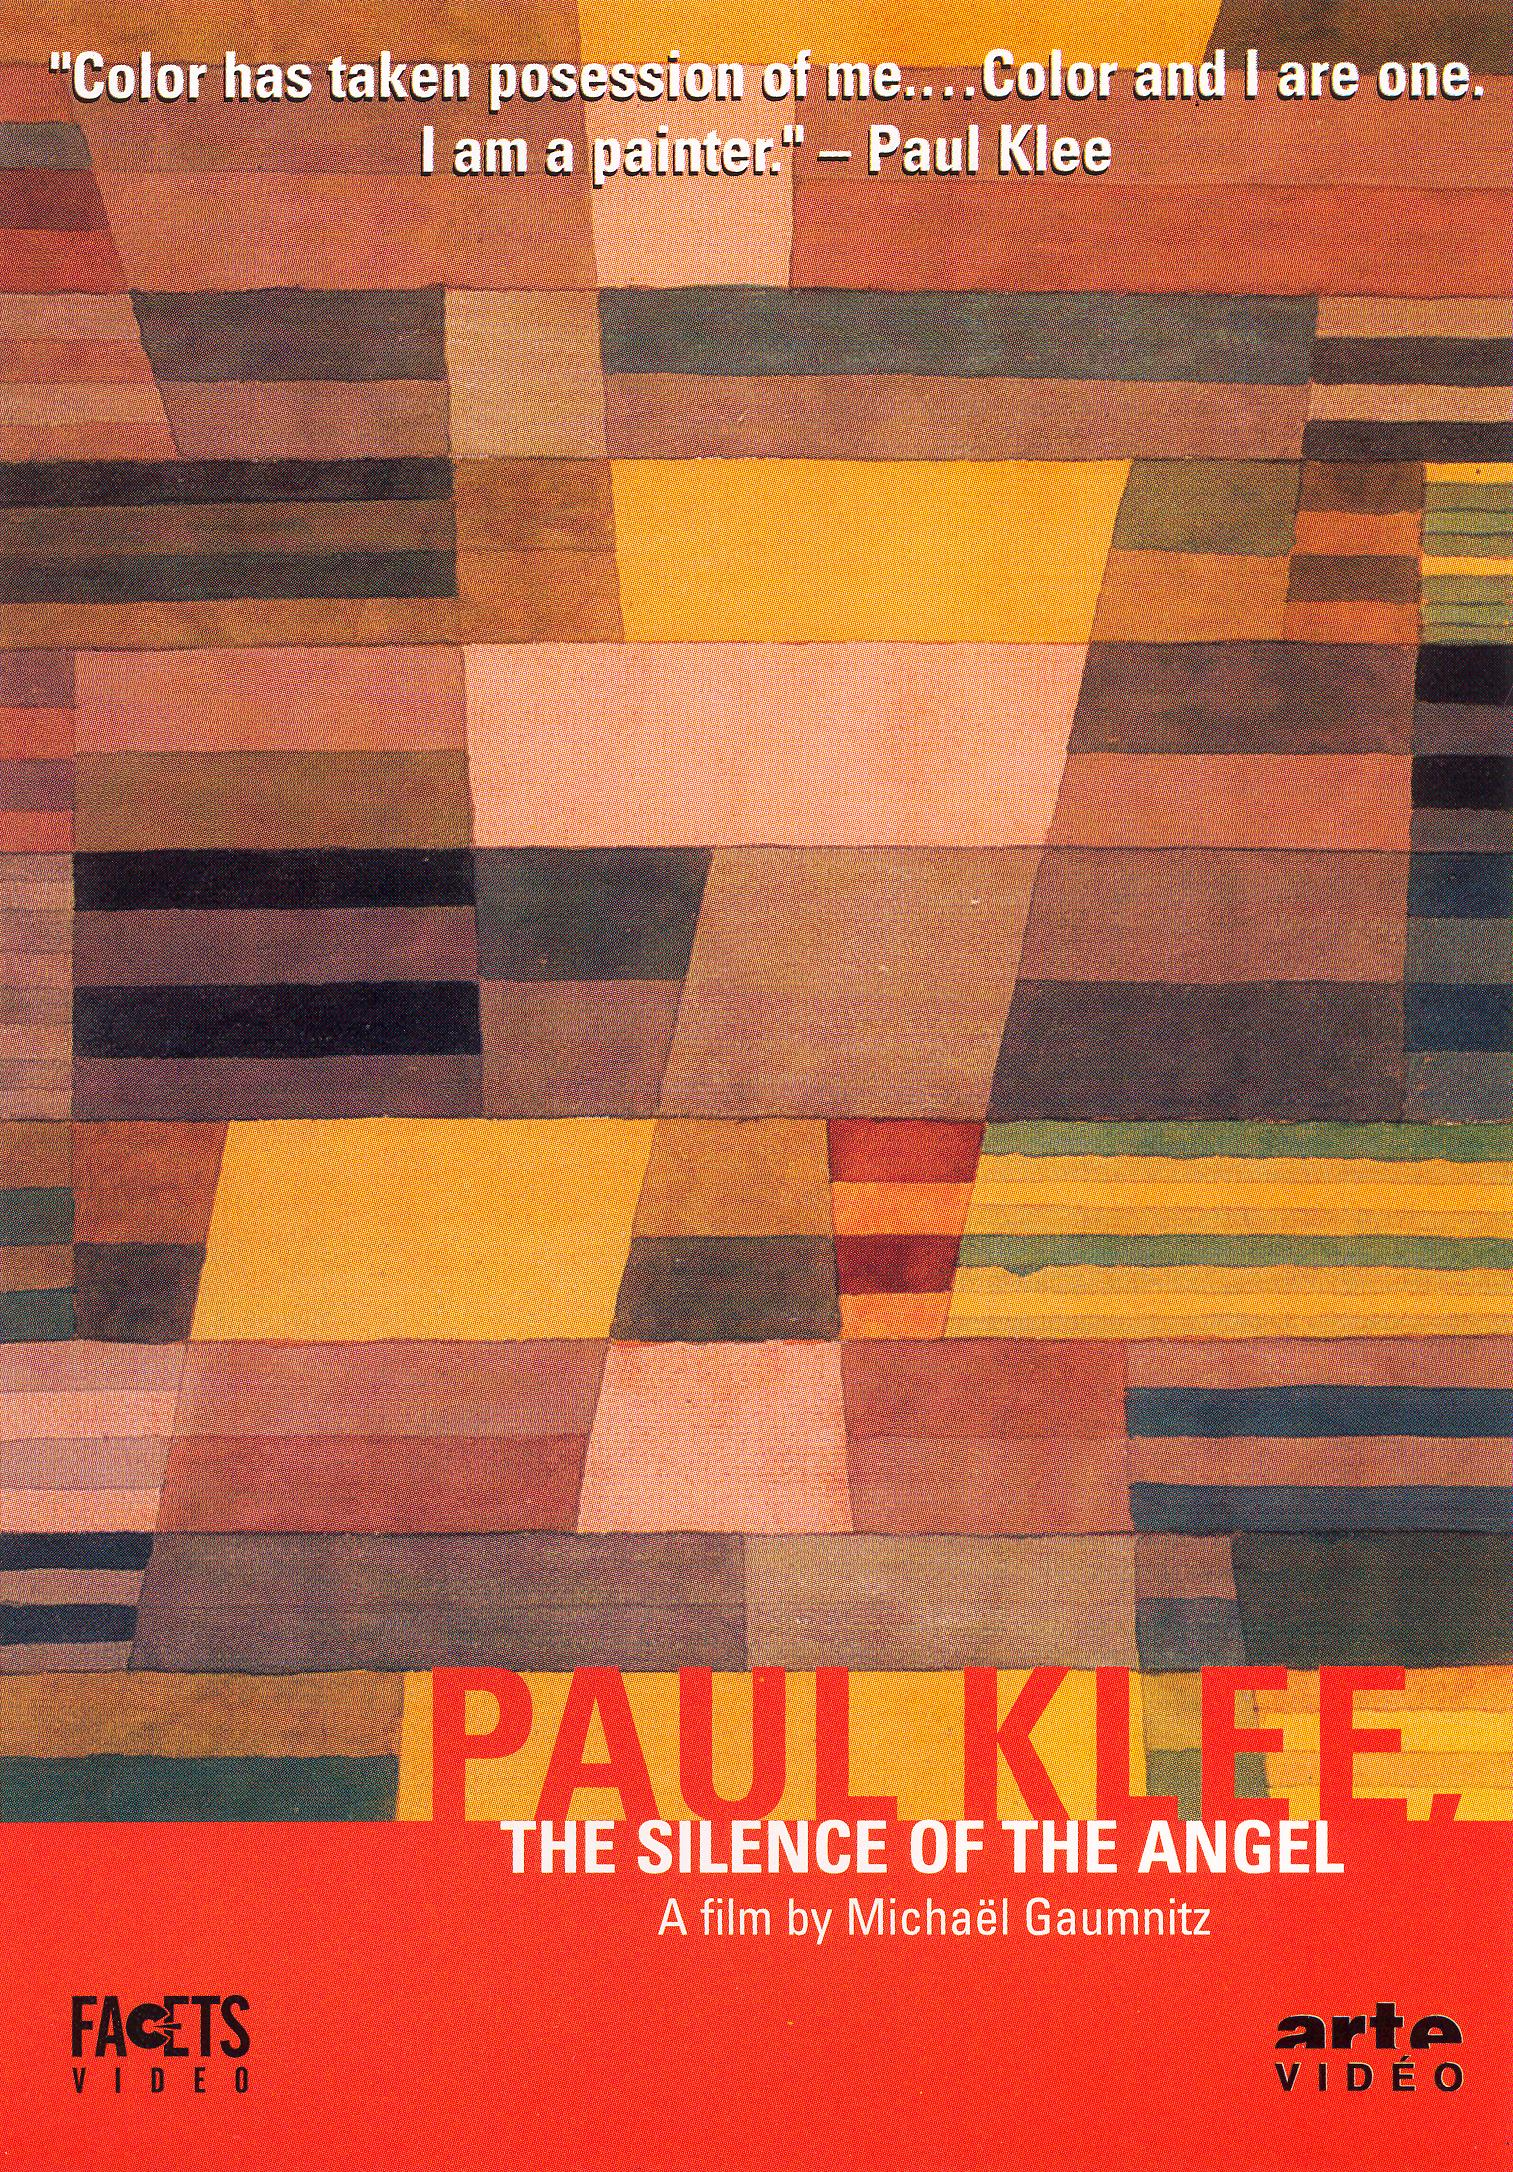 Paul Klee: The Silence of the Angel